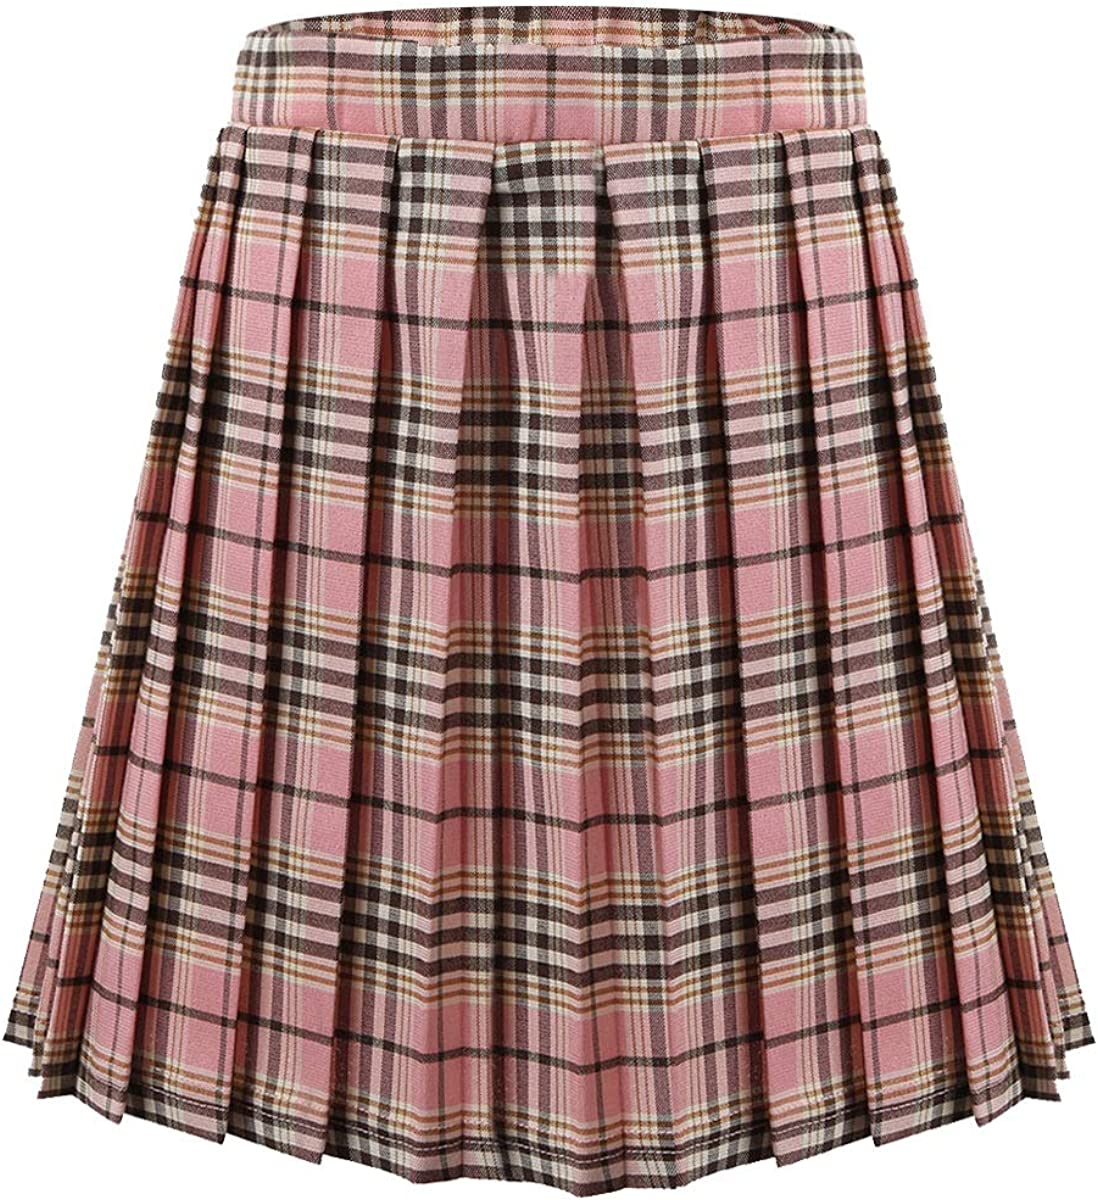 Oyolan Kids Girls Pleated Plaid Skirt School Uniform Tartan Skirt Scottish Style A-Line Pull-On Skirt with Elastic Waistband